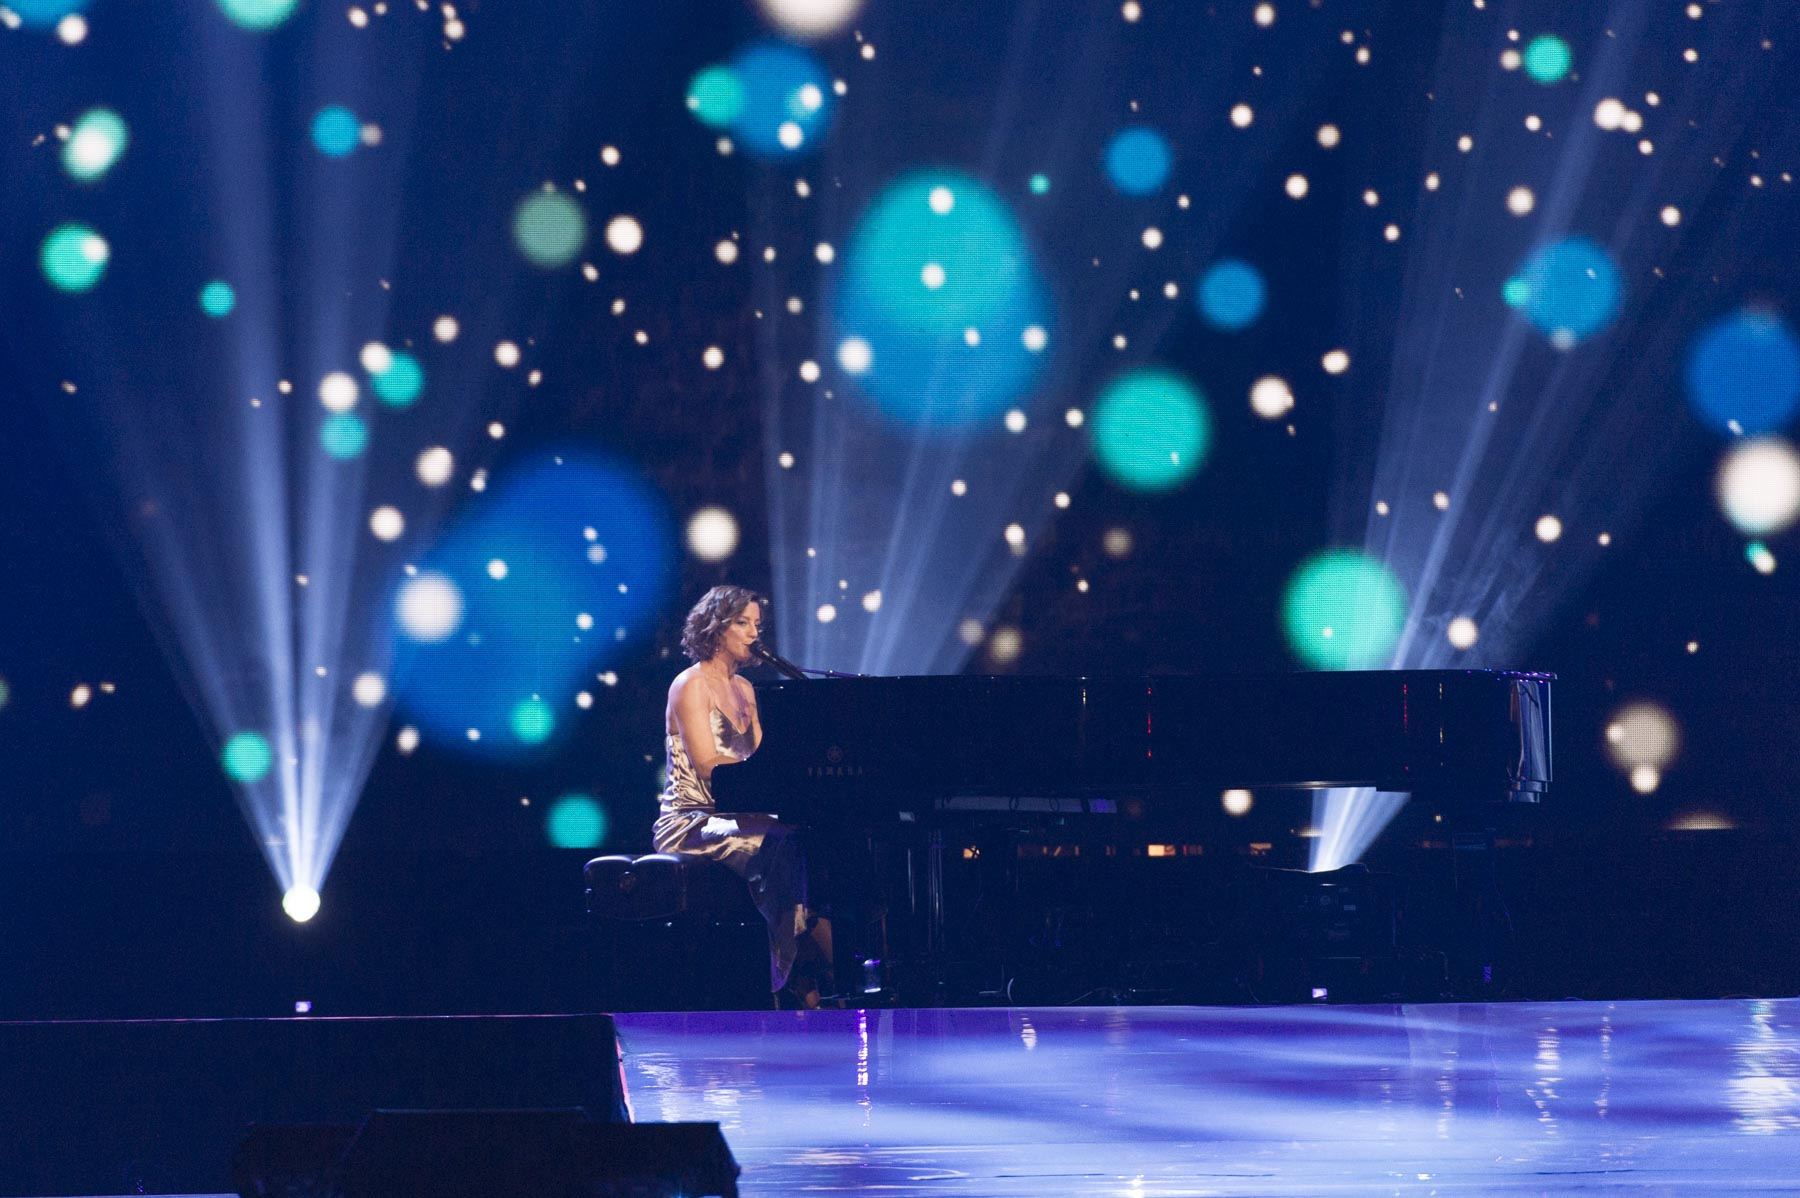 Sarah McLachlan offered a powerful performance on this occasion.